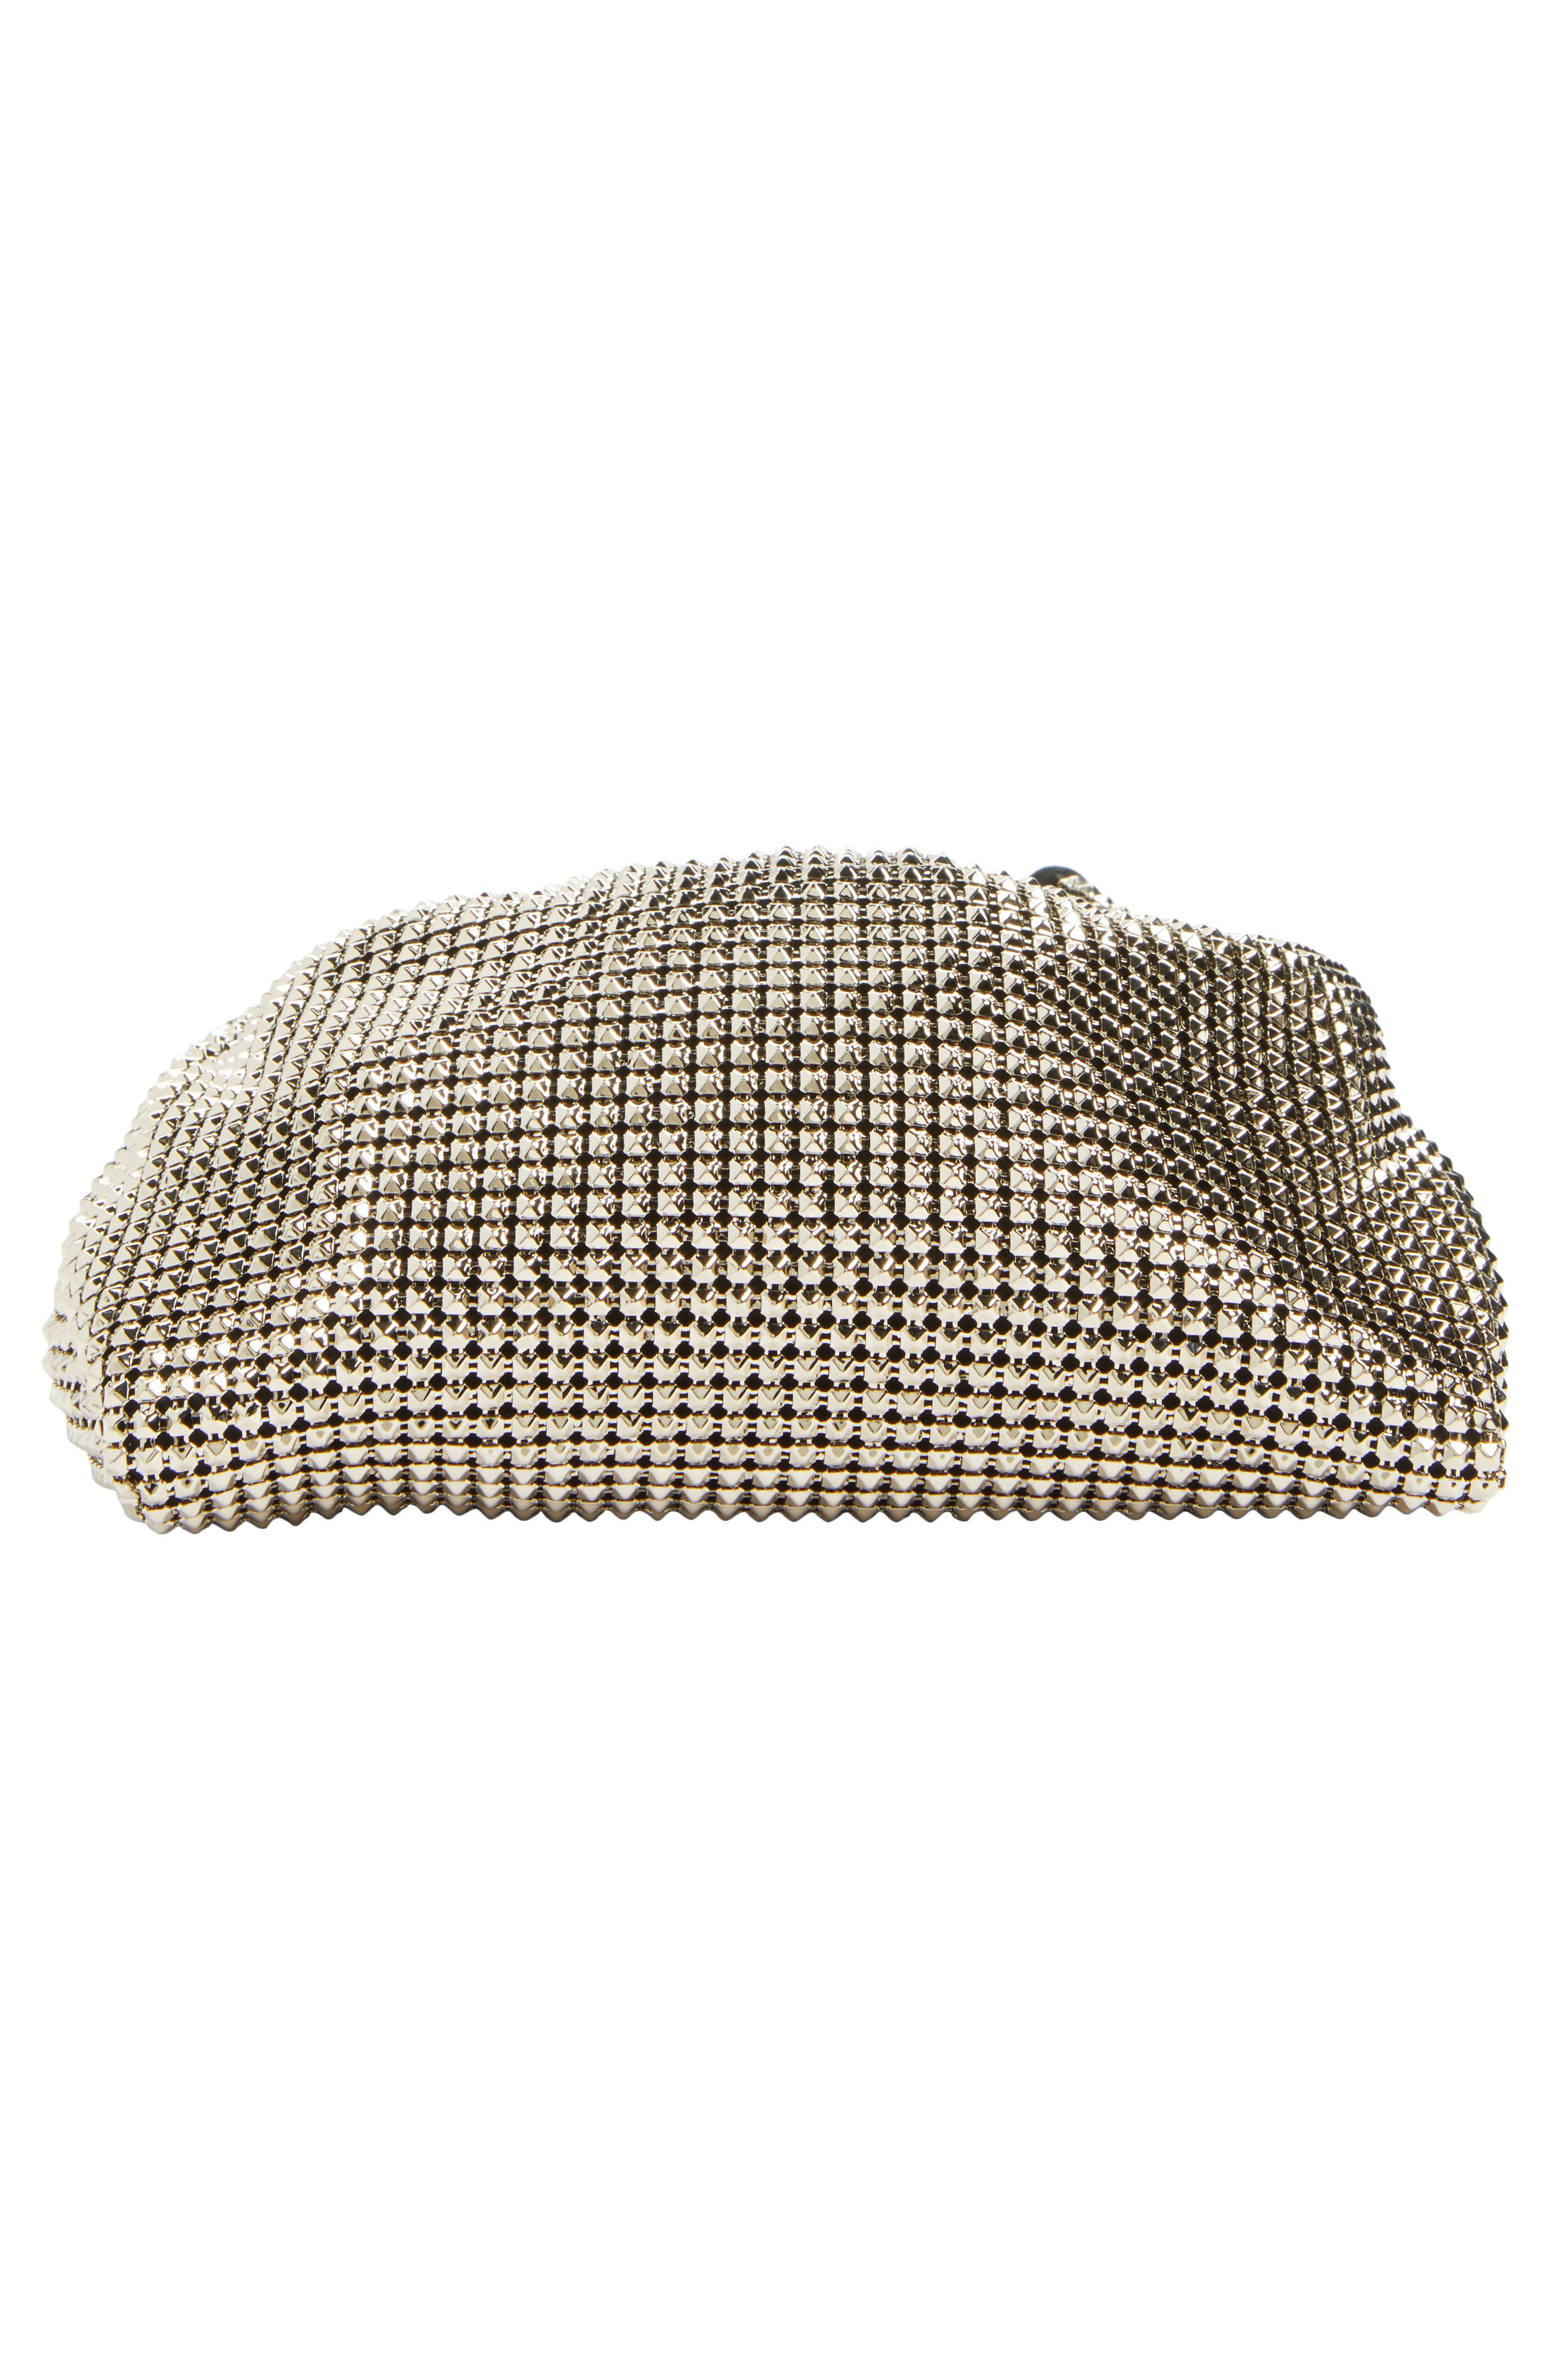 Ring Mesh Clutch,                             Alternate thumbnail 6, color,                             112